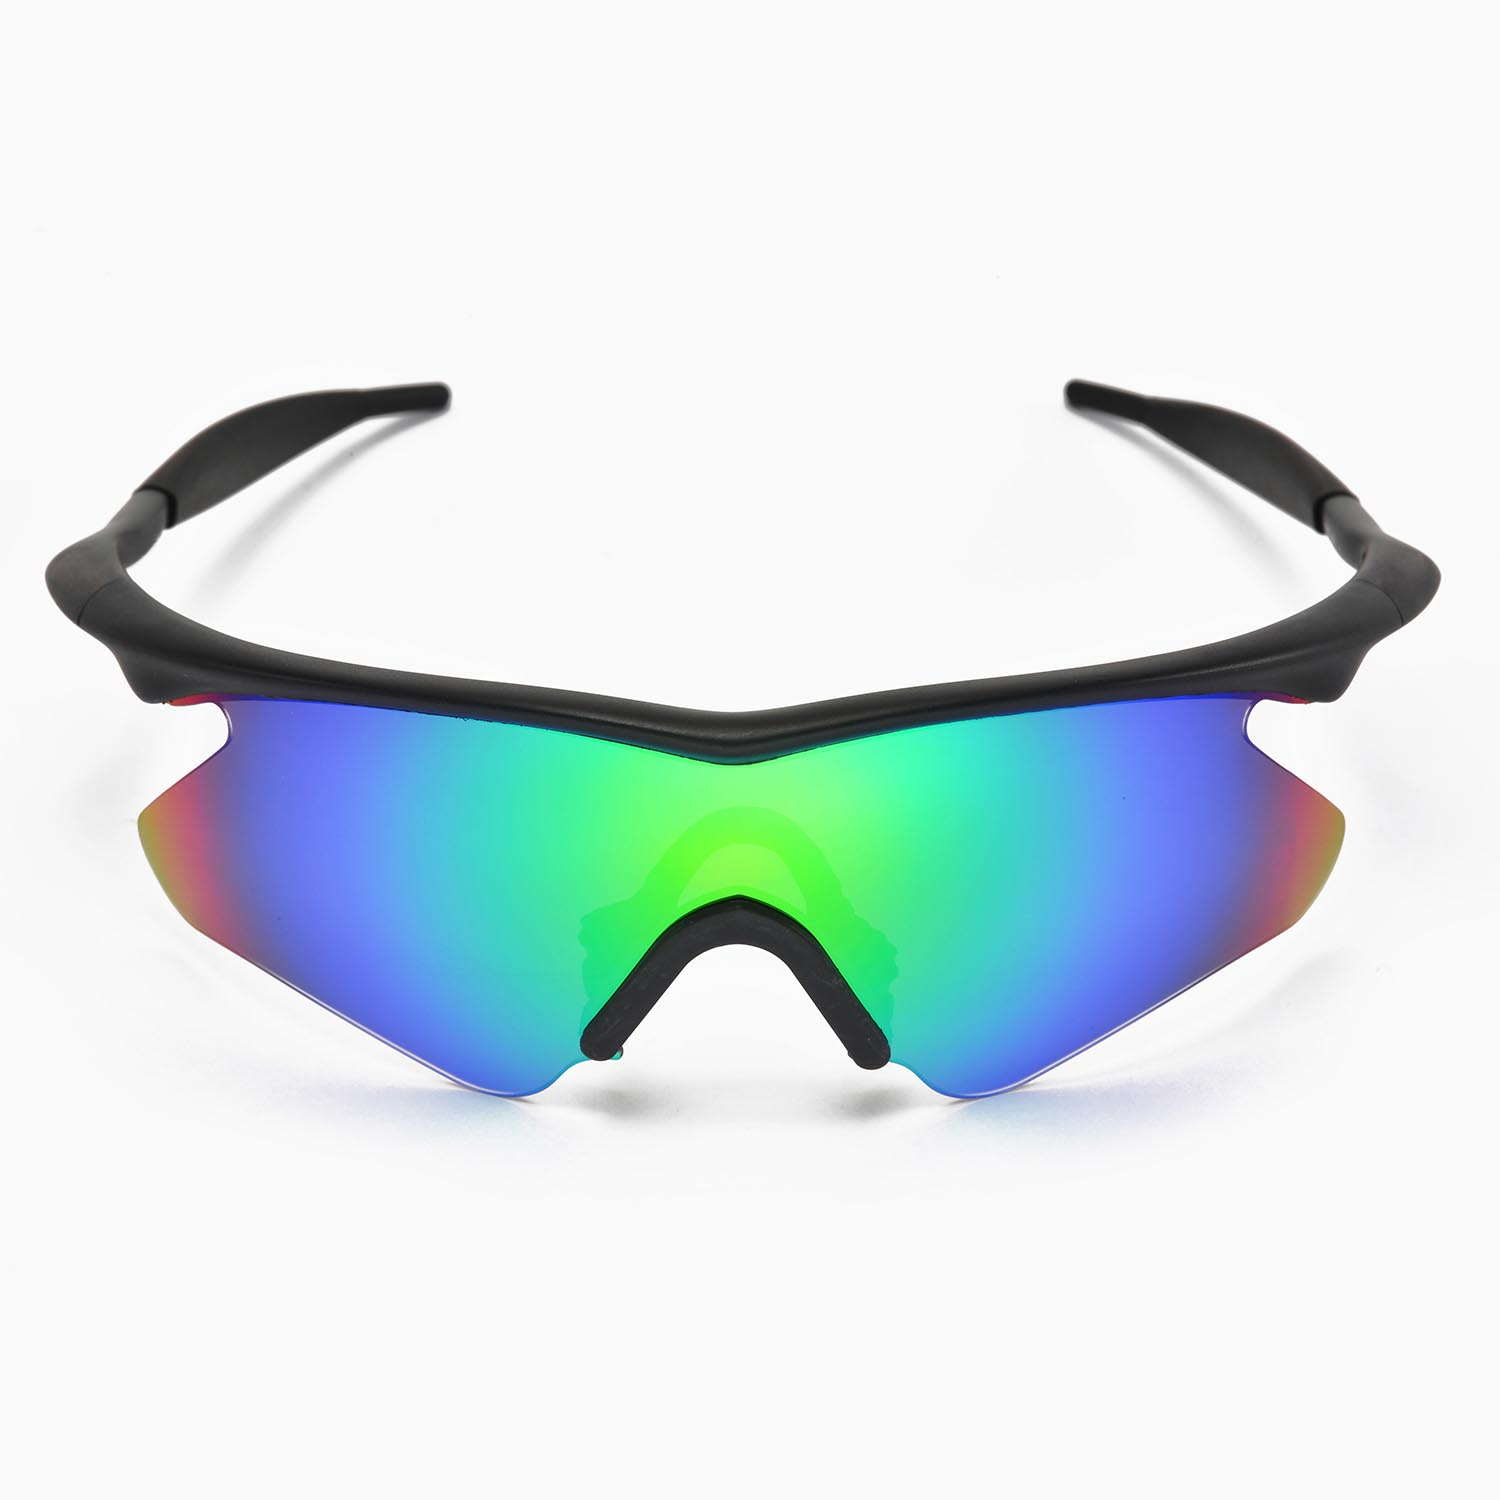 New Walleva Polarized Emerald Replacement Lenses For